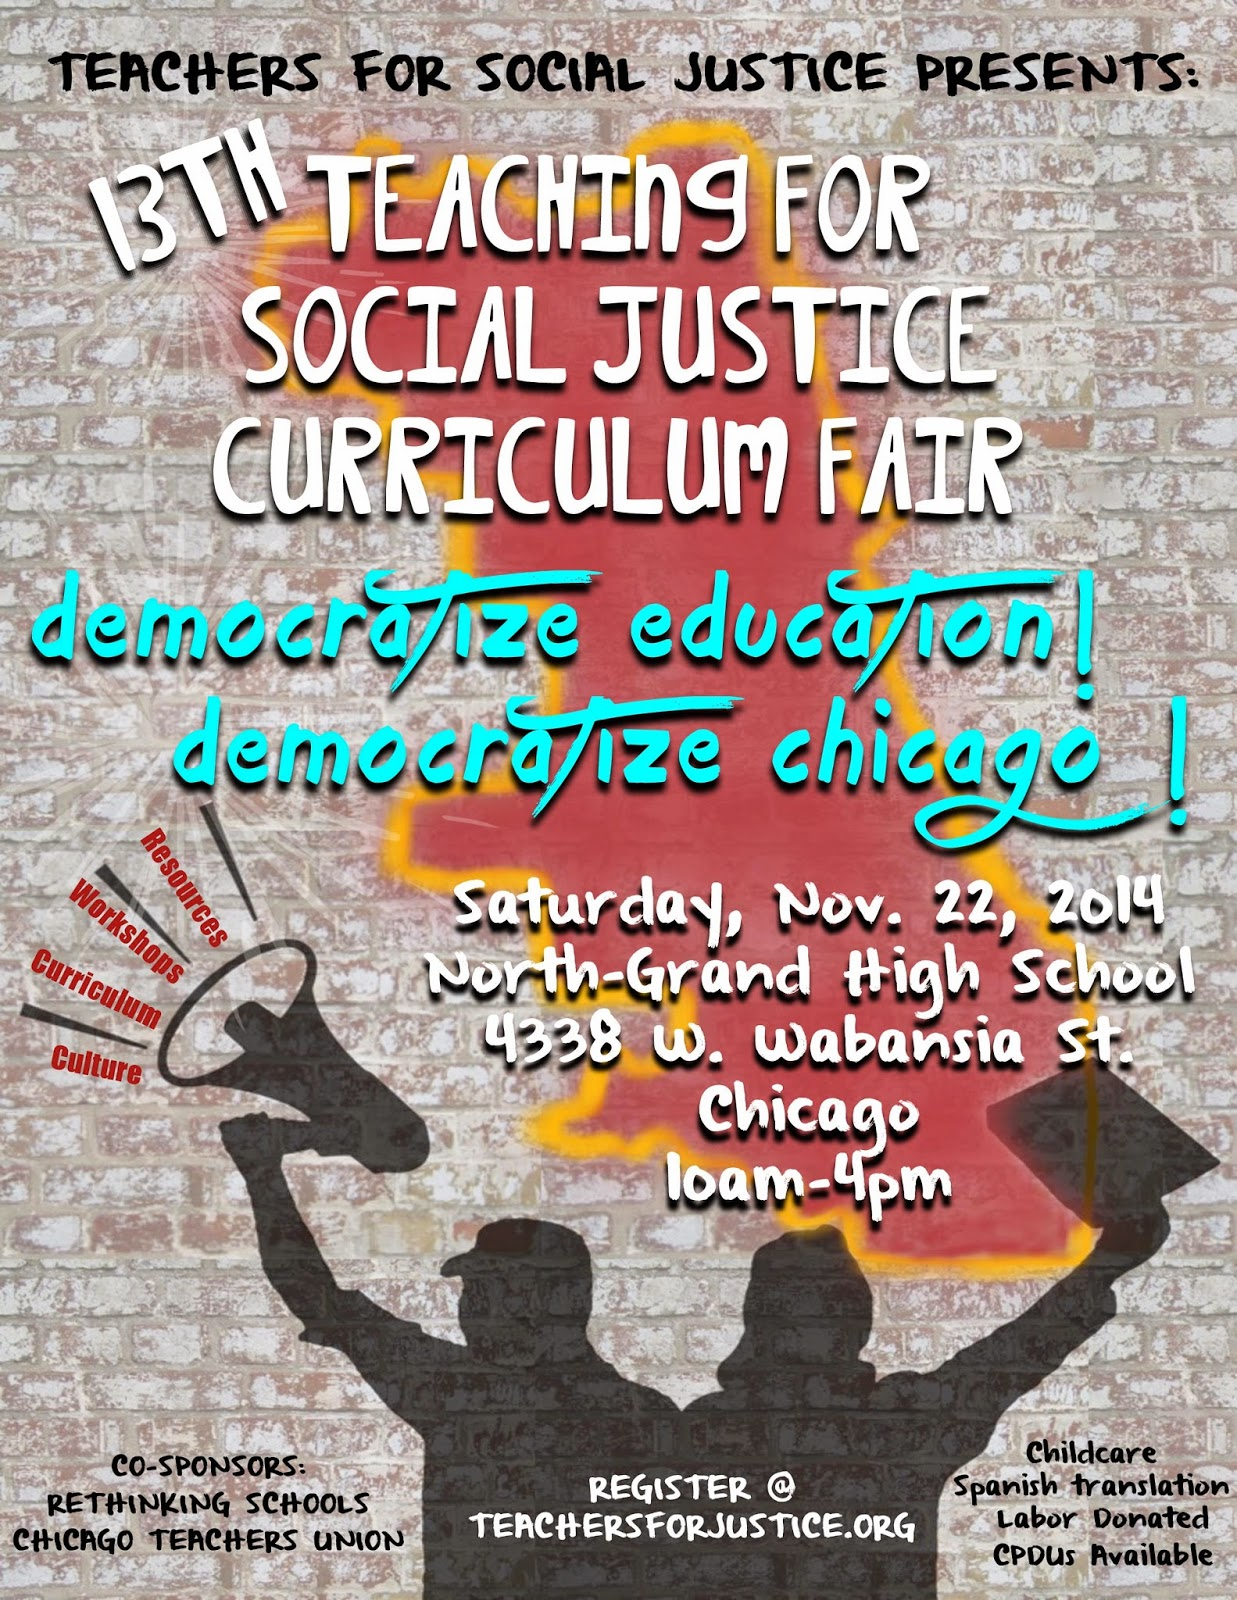 Teaching for Social Justice Curriculum Fair Poster - Design by Ellen Gradman